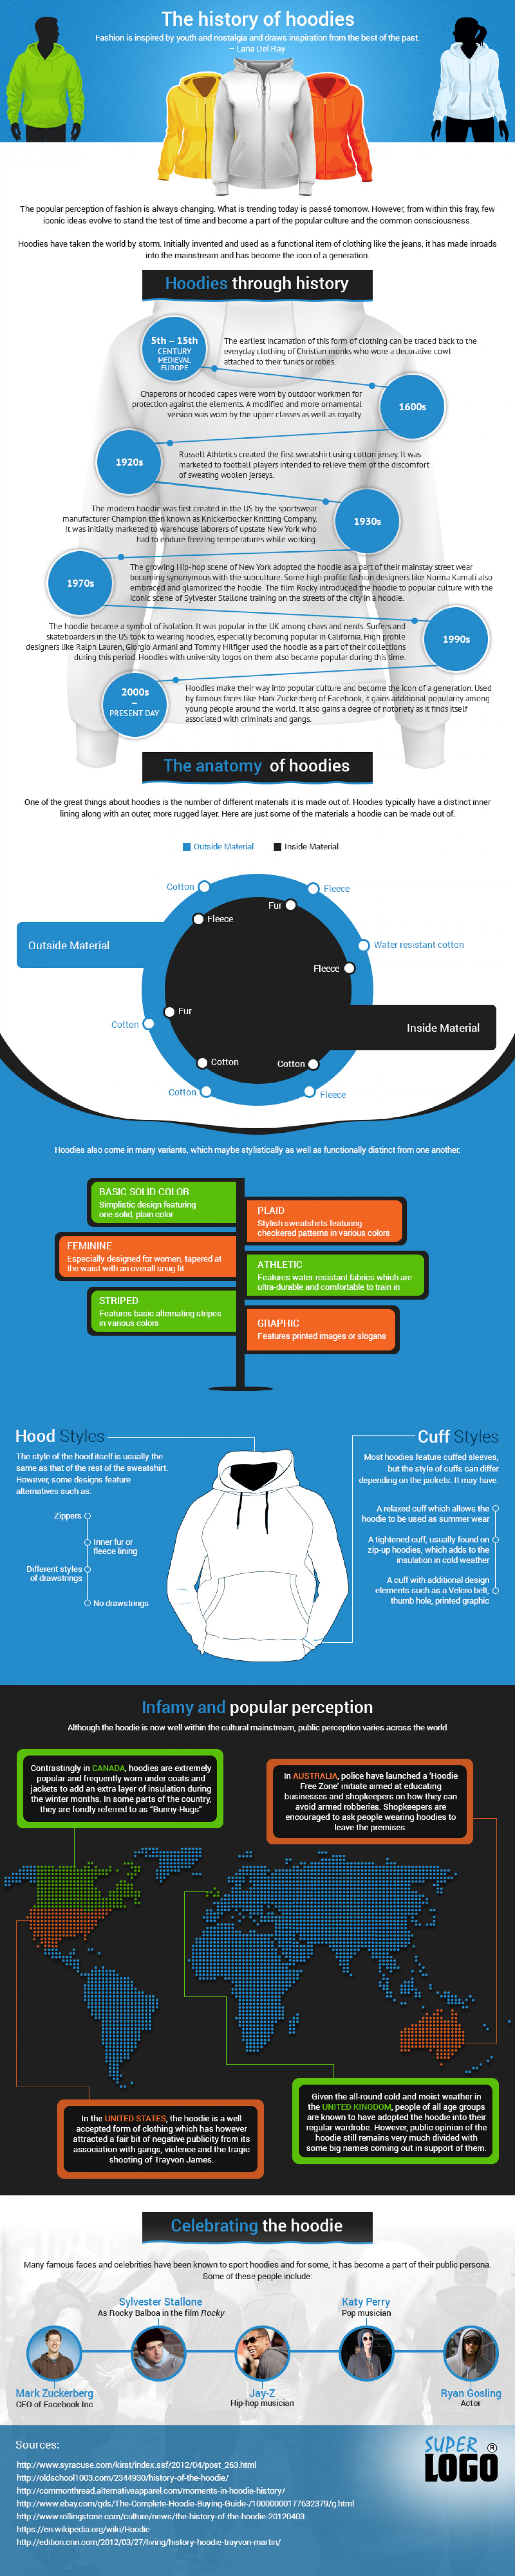 The History of Hoodies Infographic